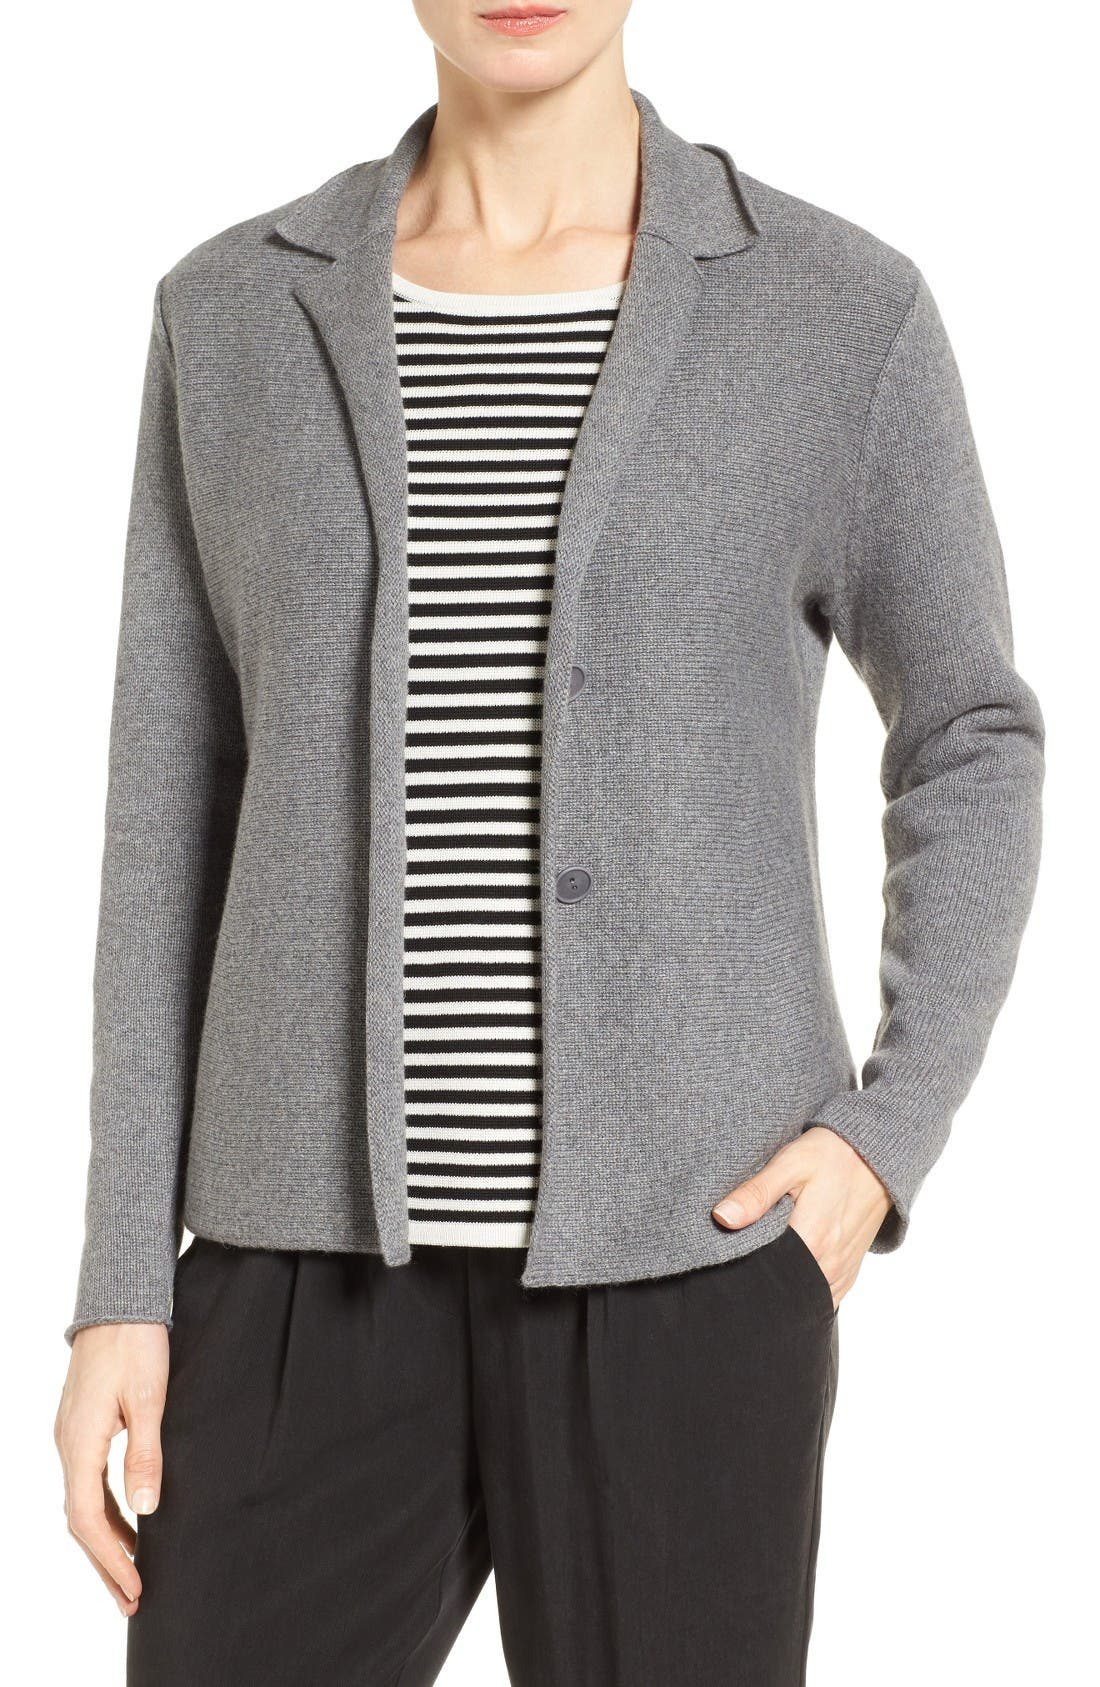 Alternate Image 1 Selected - Eileen Fisher Recycled Cashmere & Merino Wool Sweater Jacket